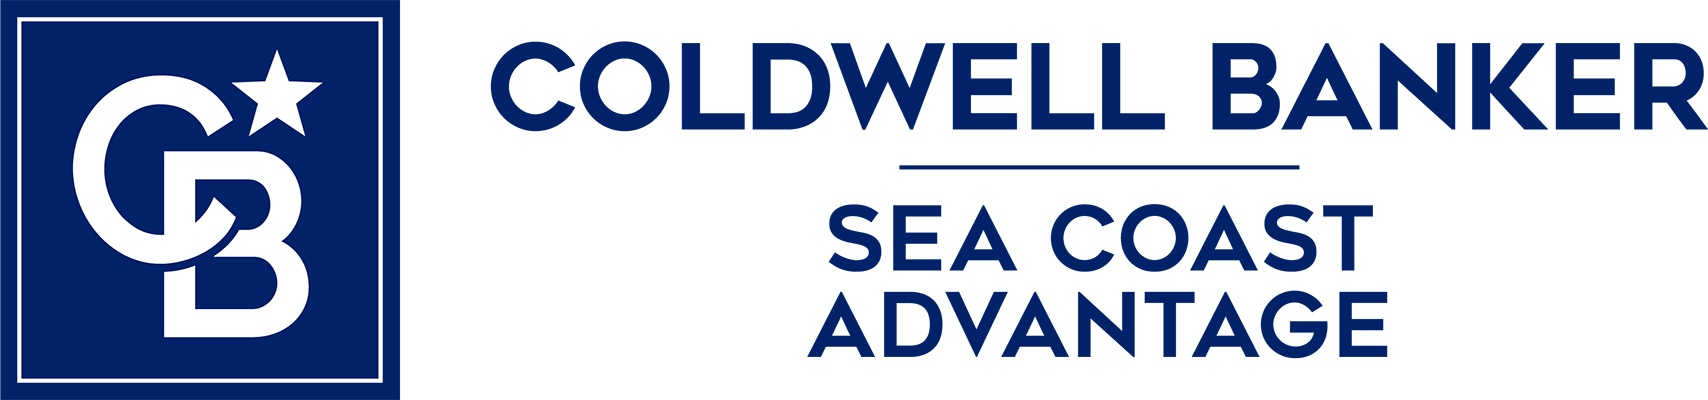 Lucy Maldonado - Coldwell Banker Sea Coast Advantage Realty Logo